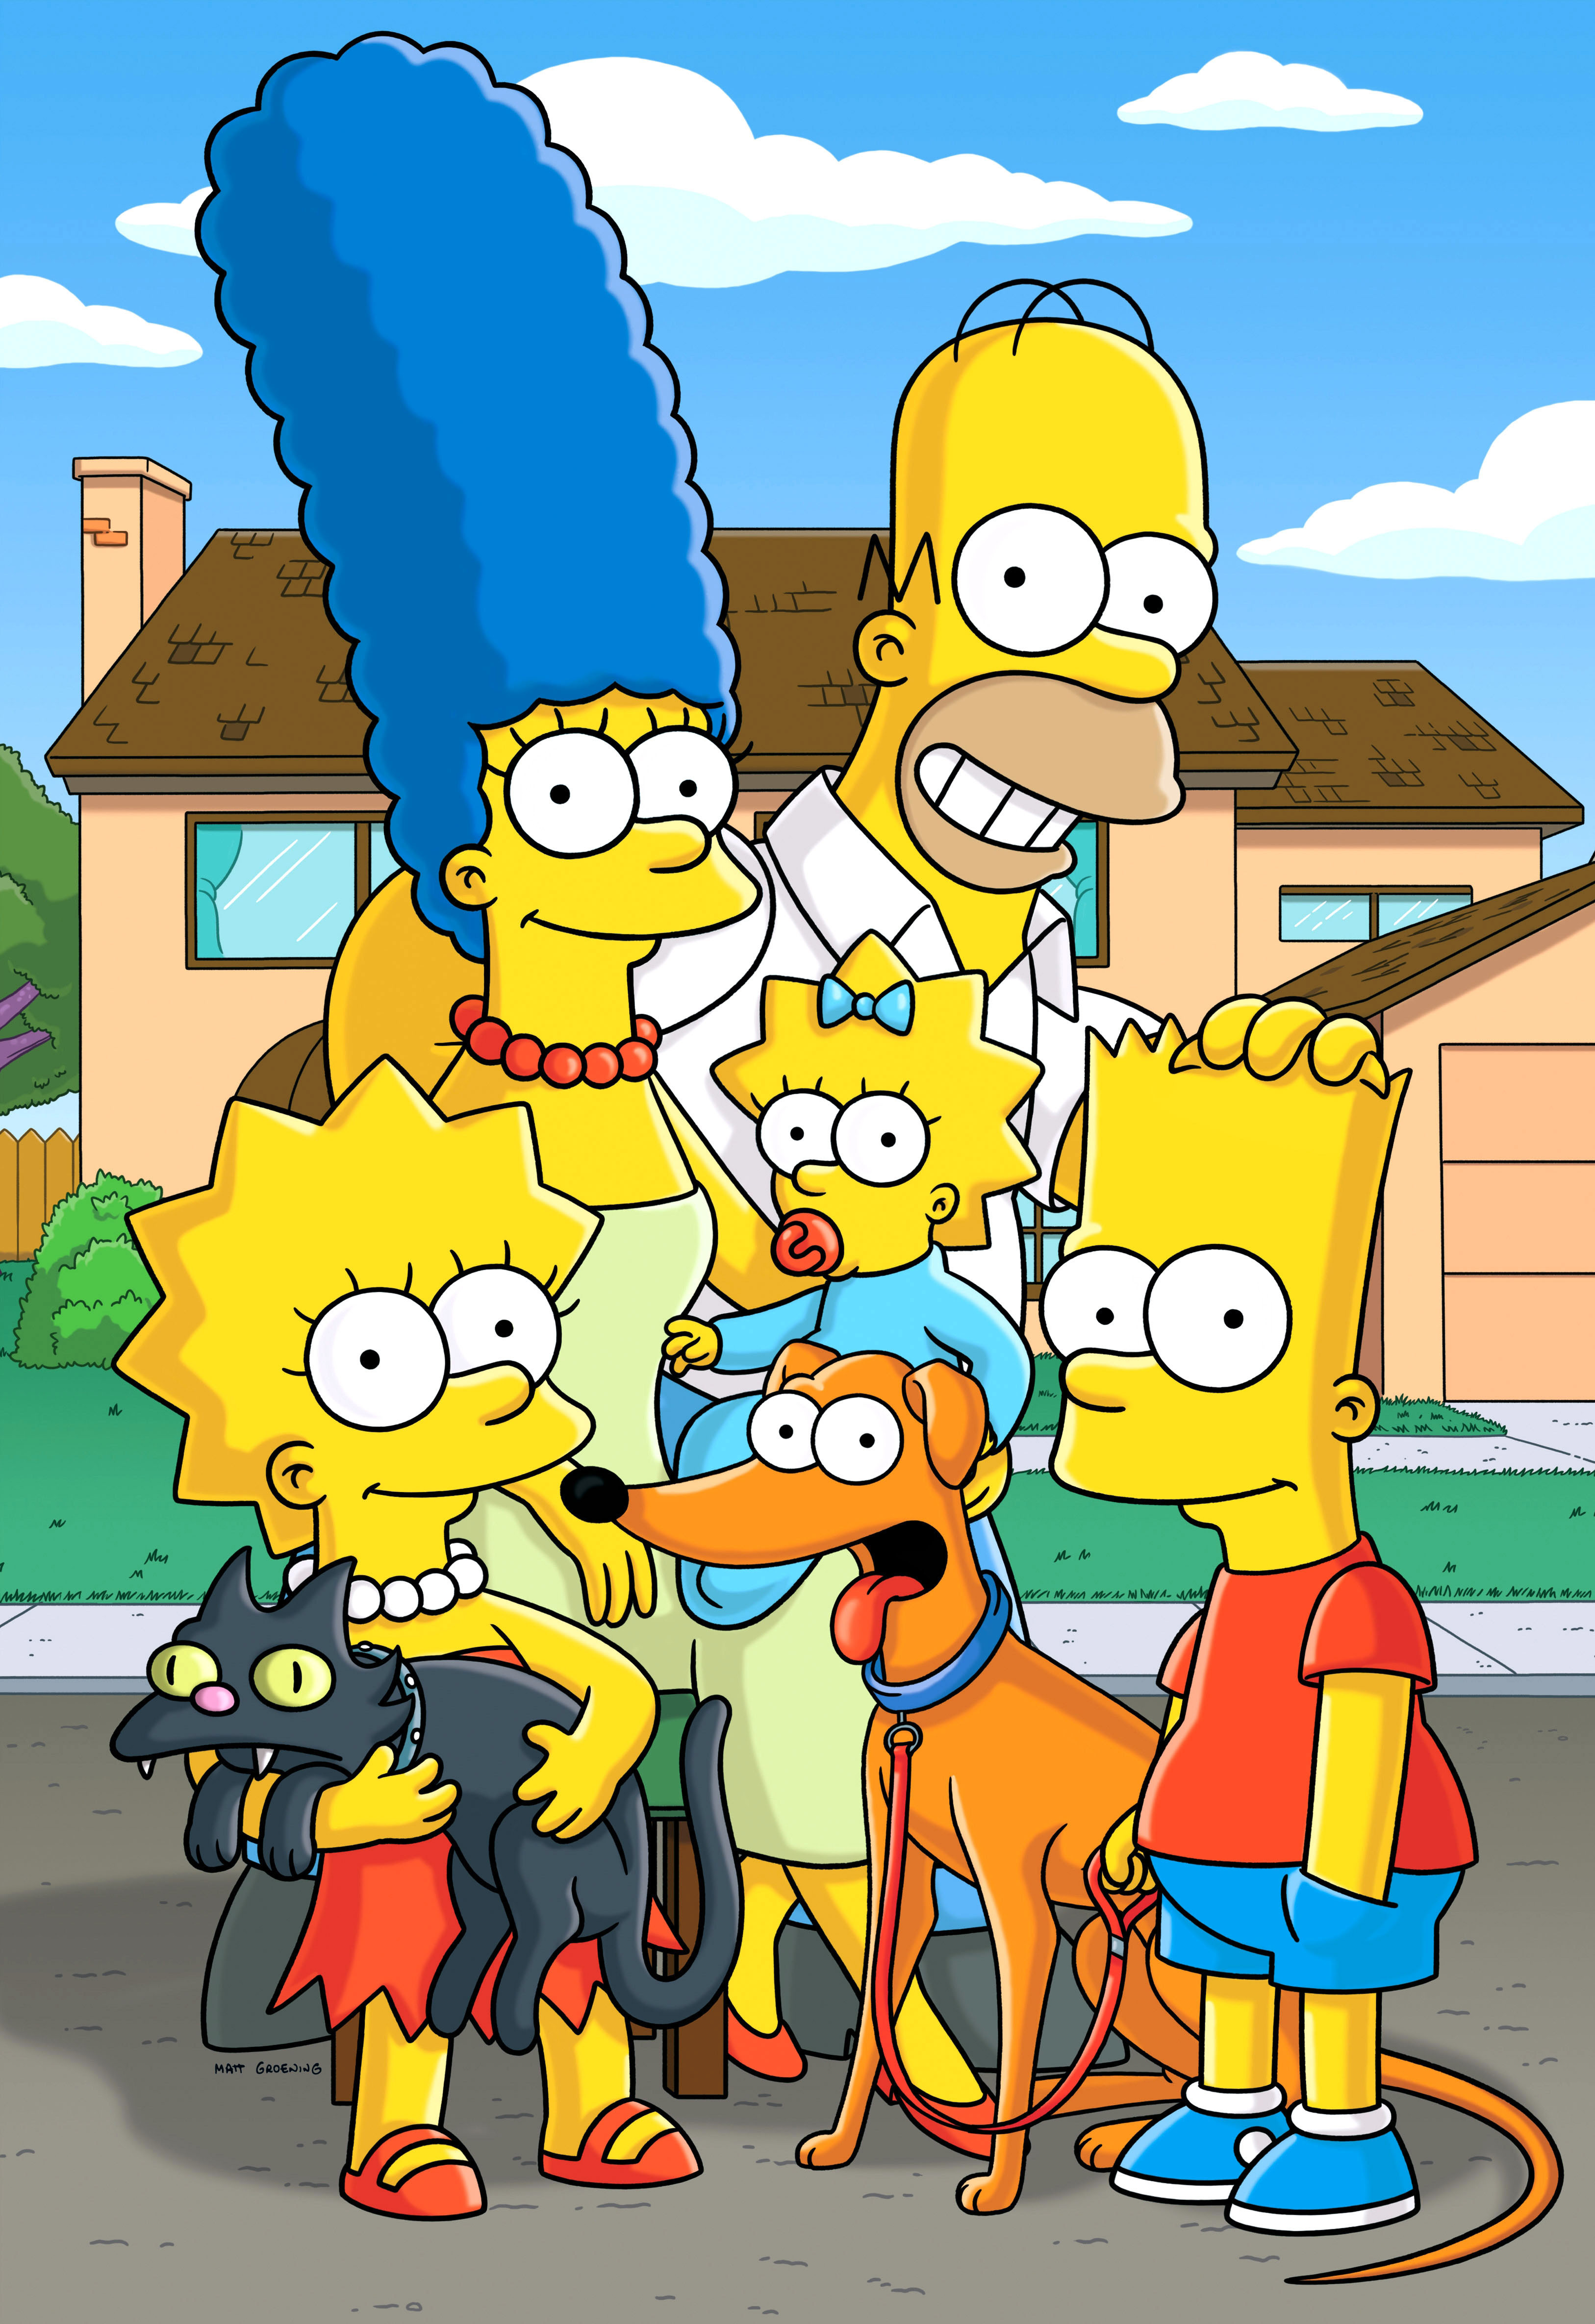 America's most famous, and dysfunctional family, the Simpsons